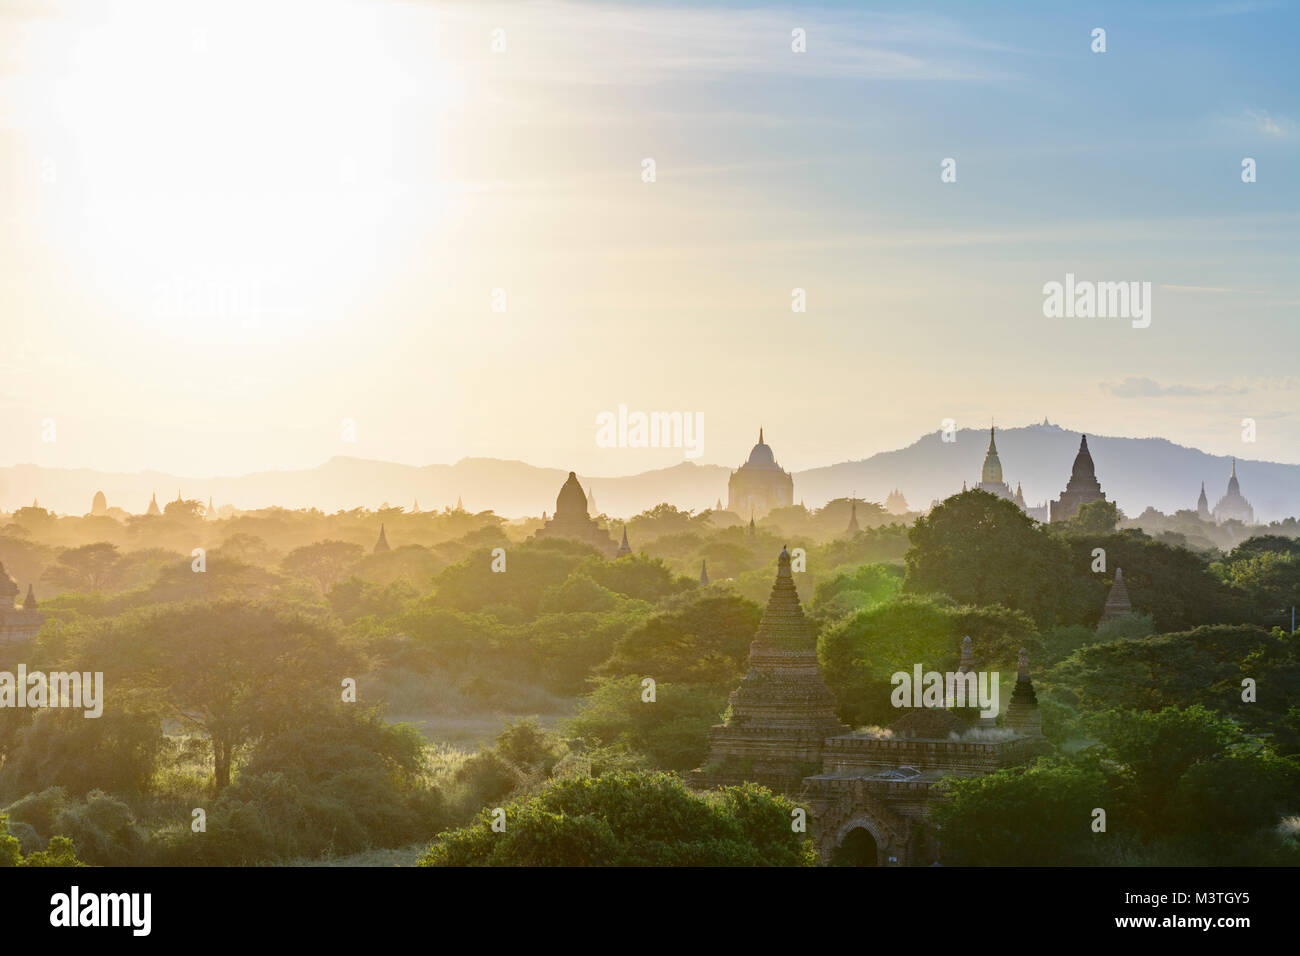 Bagan: Thatbyinnyu Temple, Ananda Temple, temples in Old Bagan, stupa Tan Kyi Paya atop mountain, , Mandalay Region, - Stock Image